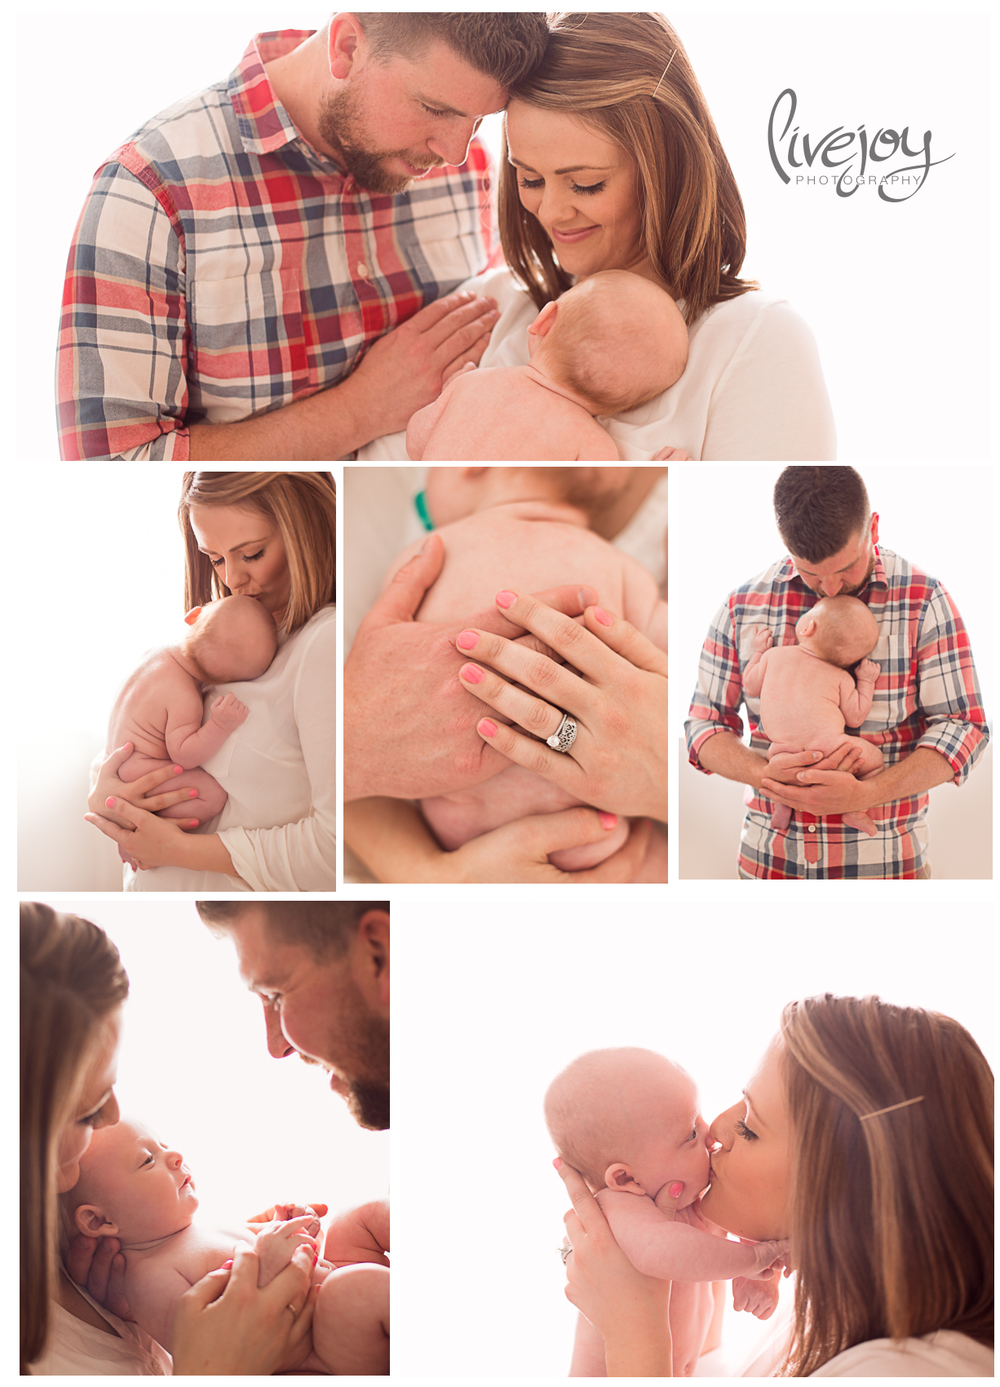 Baby Photos with Family | LiveJoy Photography